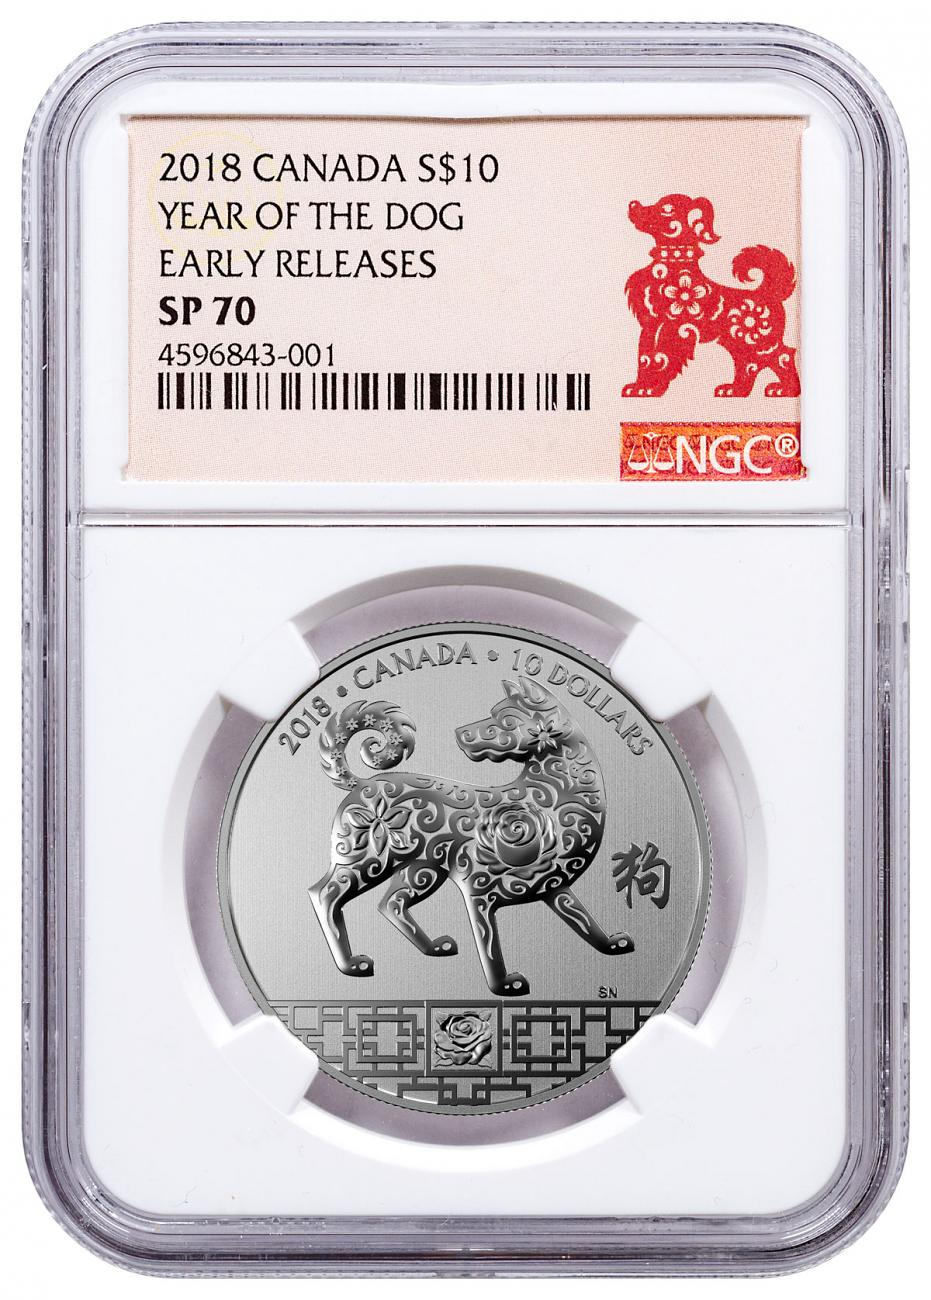 2018 Canada Year of the Dog 1/2 oz Silver Lunar Specimen $10 Coin NGC SP70 ER Year of the Dog Label